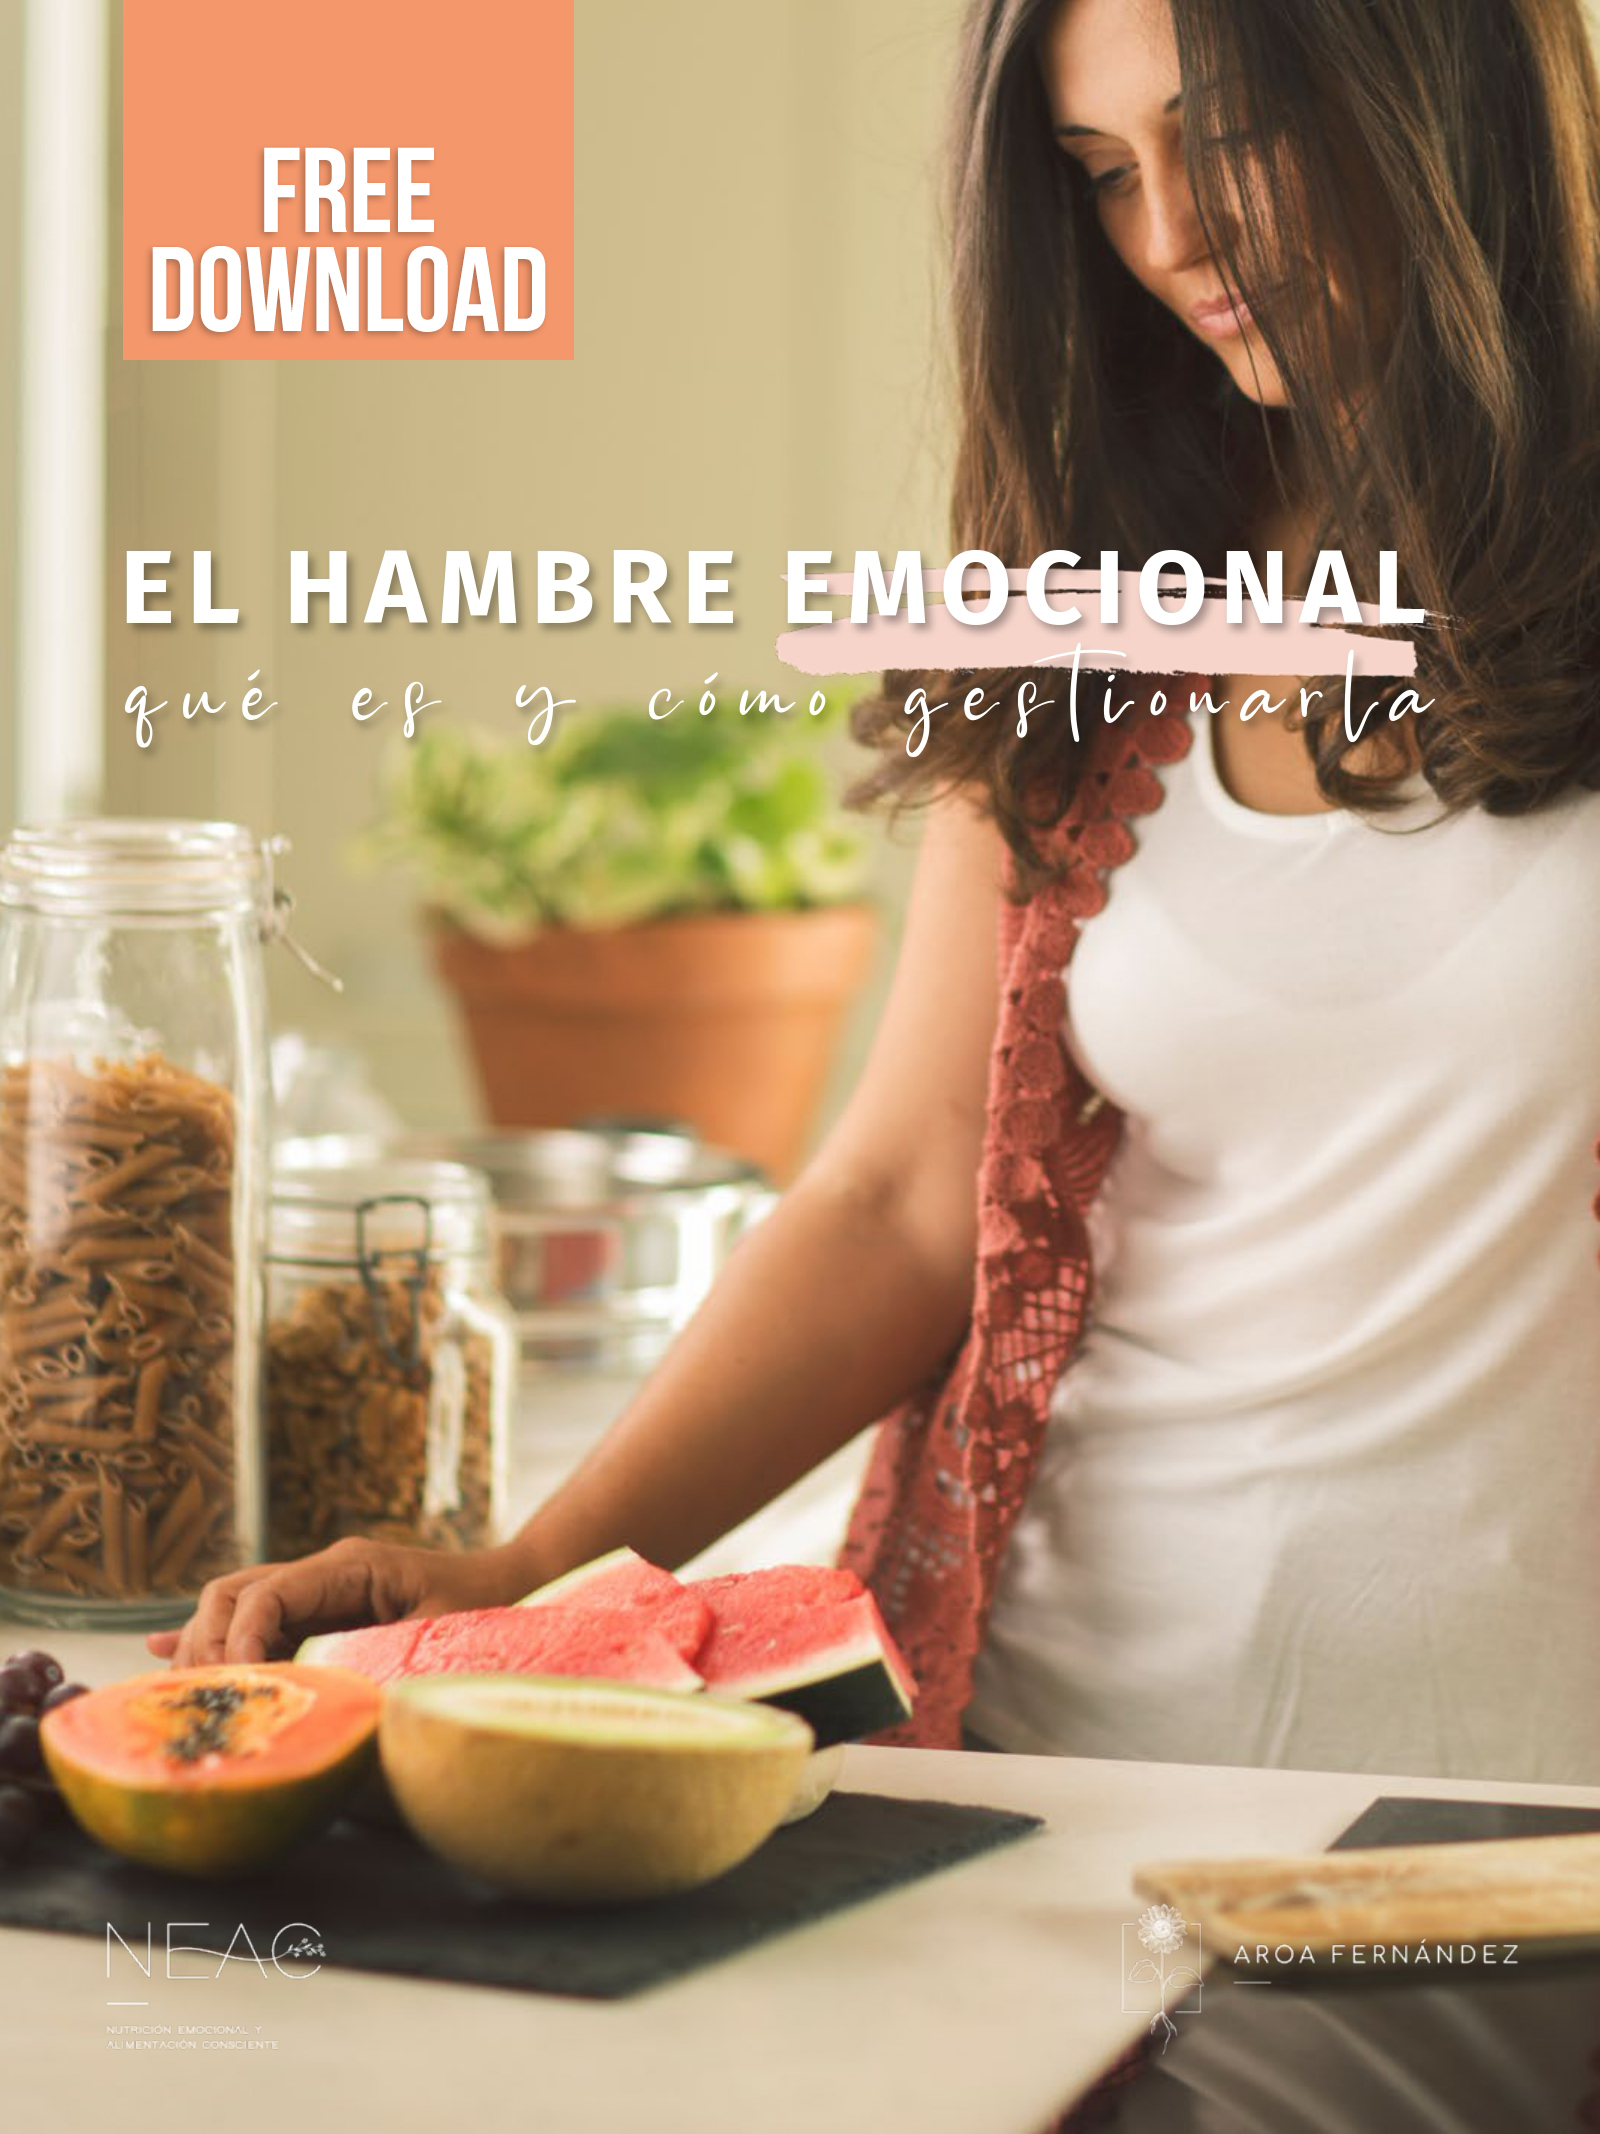 Emotional hunger: what it is and how to manage it